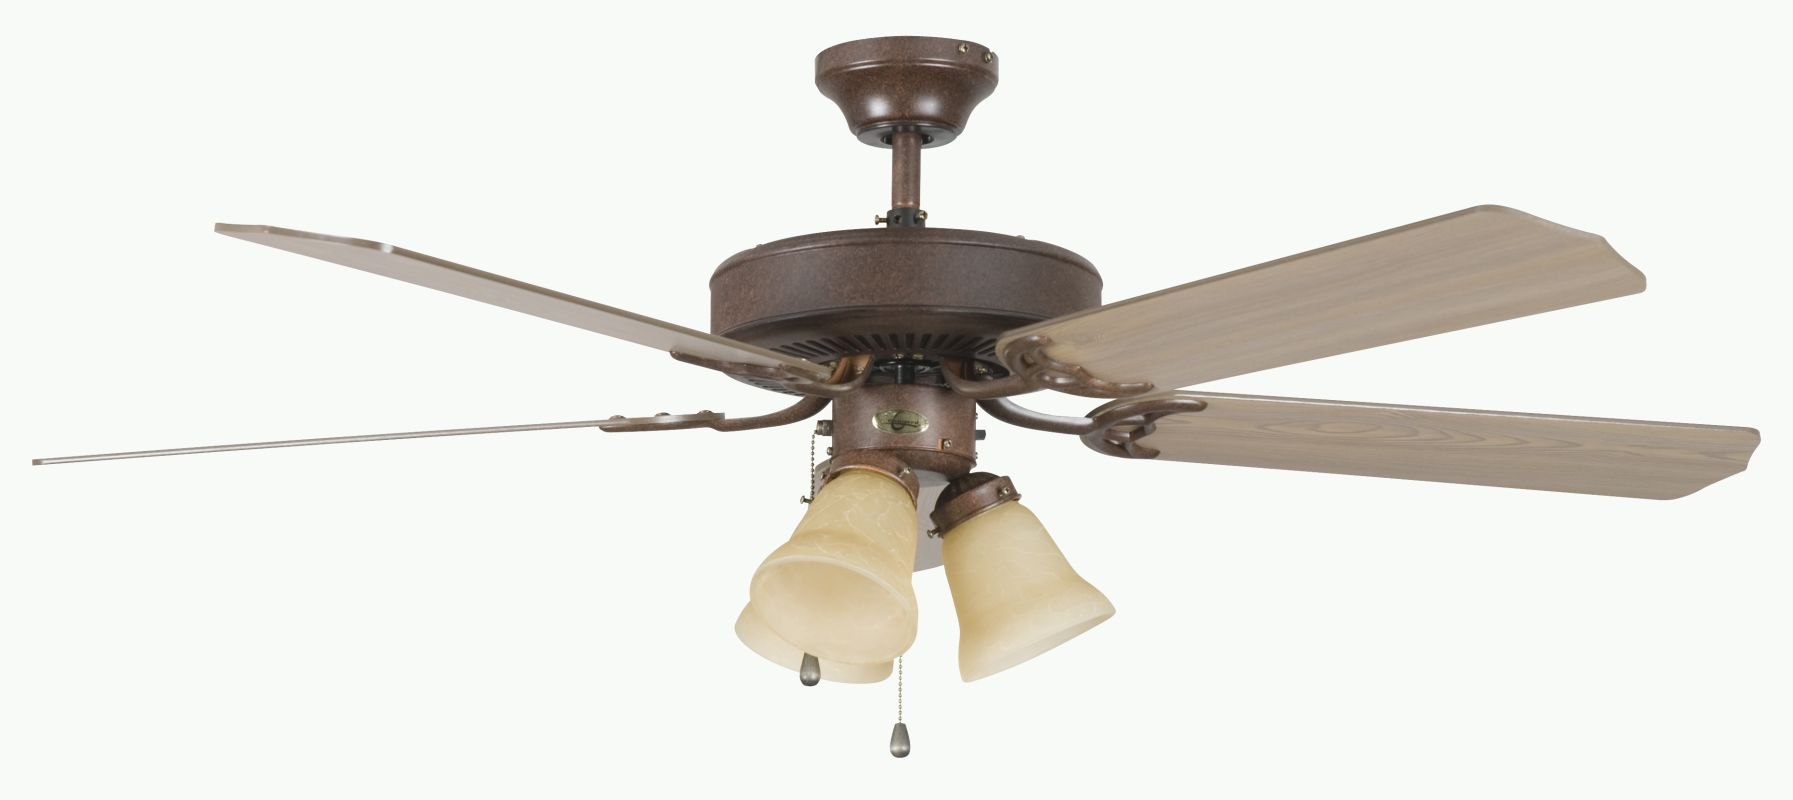 "Concord 52HEH5E Heritage Home 52"" 5 Blade Indoor Ceiling Fan with"